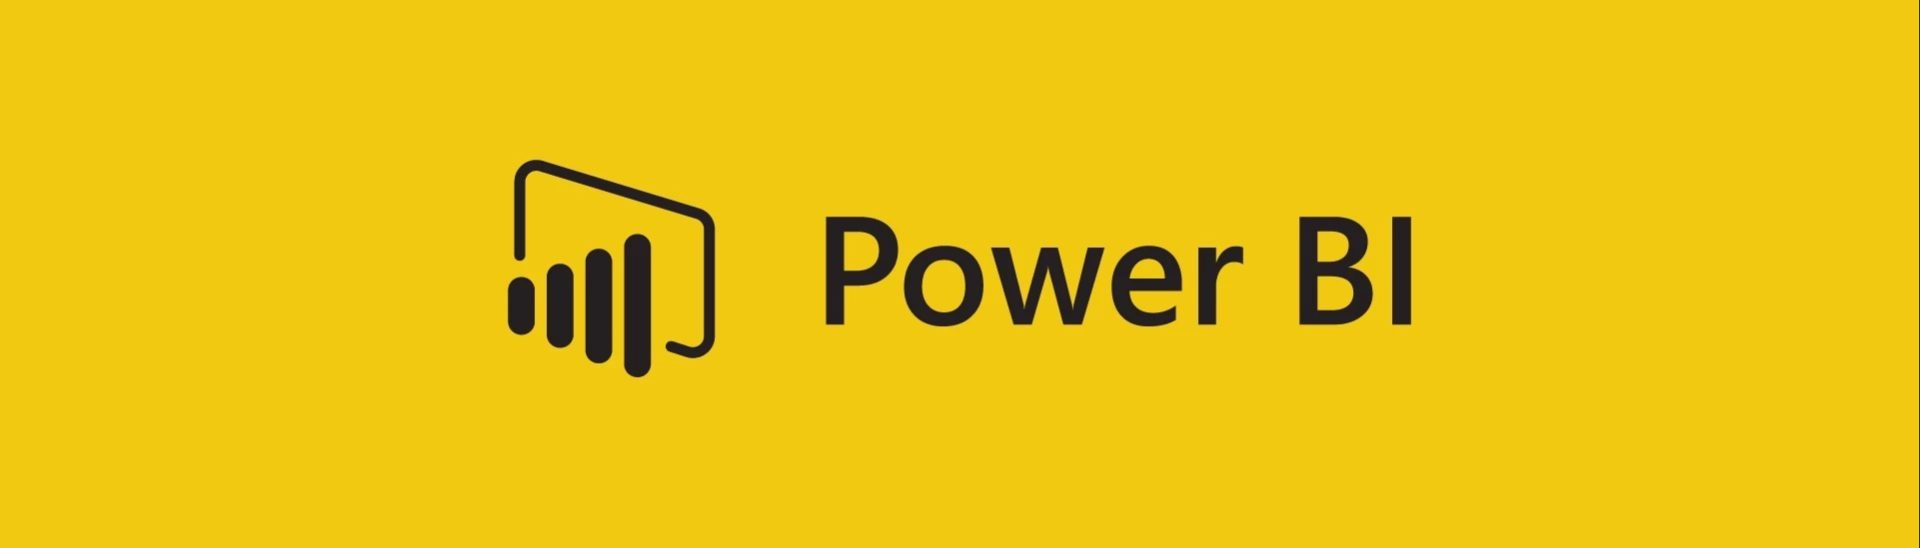 Power BI specialist Frank Govers